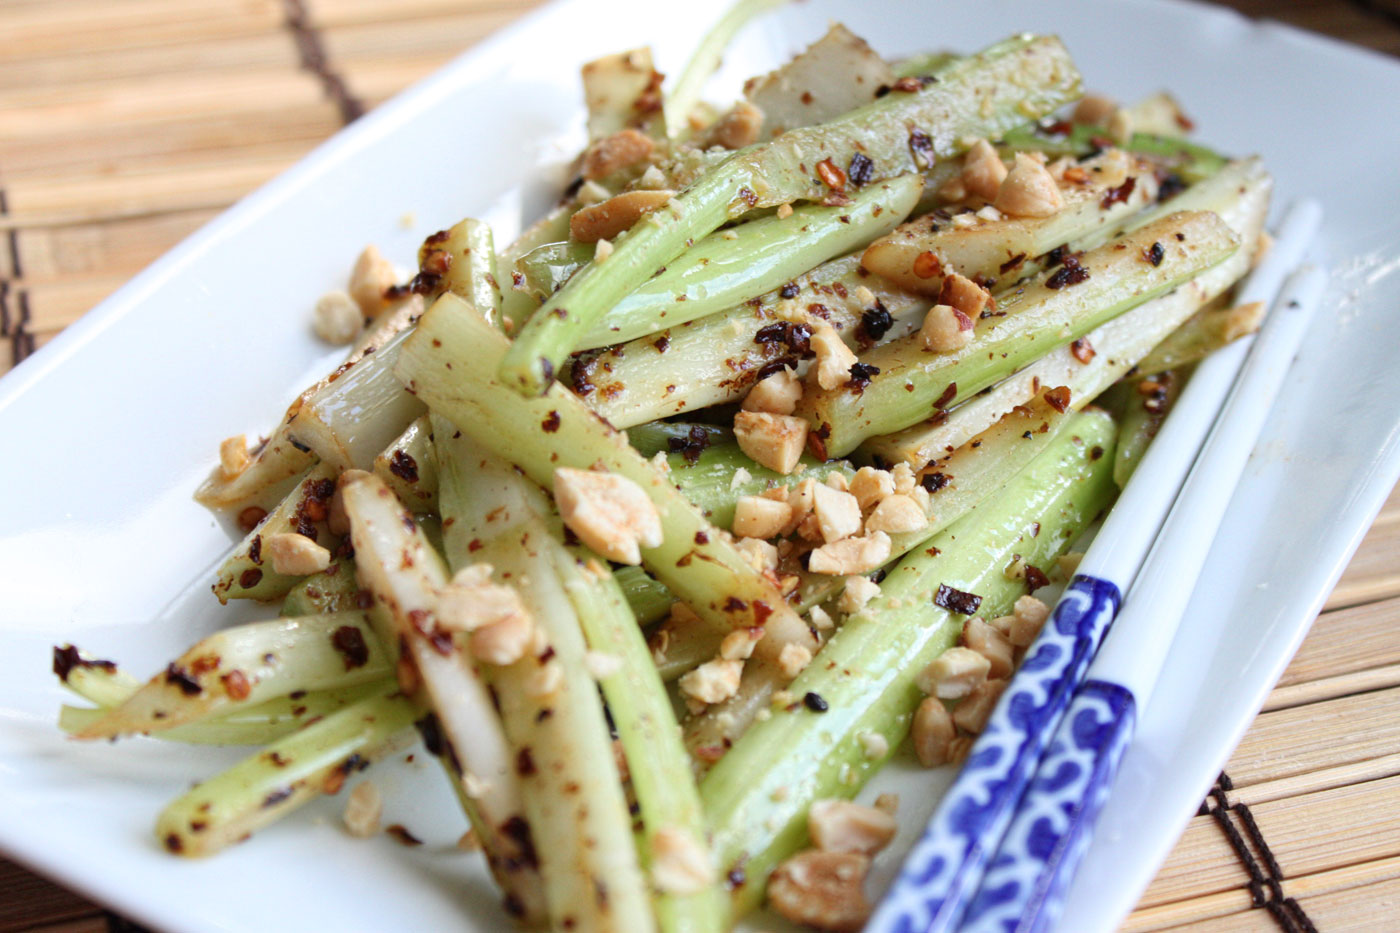 celery and turn it into a spicy stir fried celery